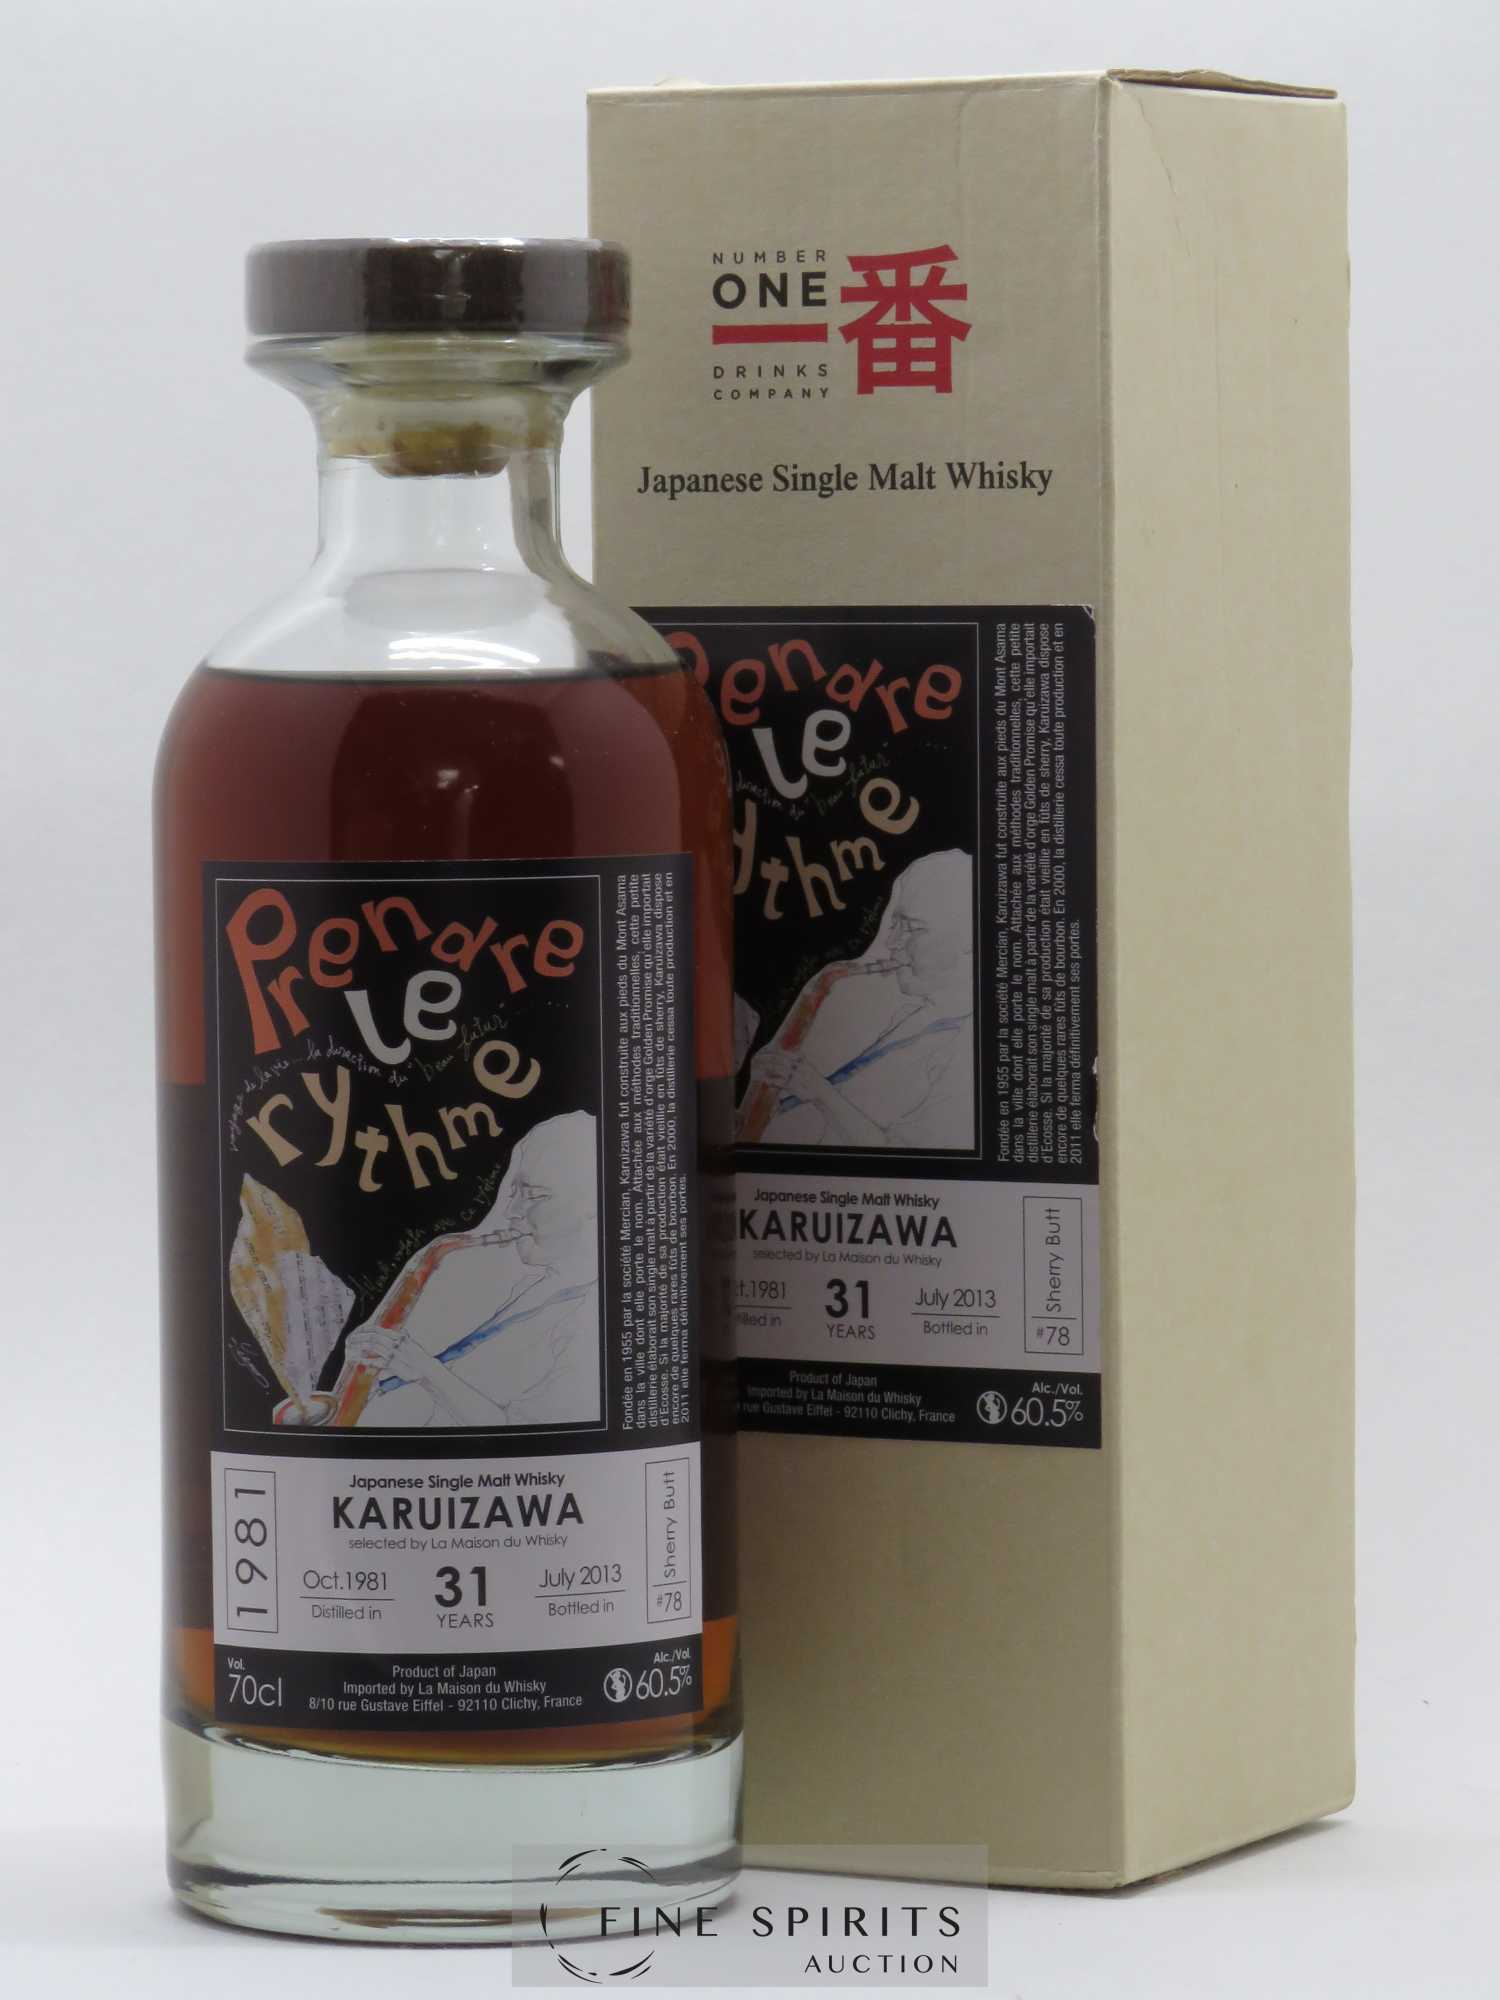 Karuizawa 31 years 1981 Number One Drinks Prendre le Rythme Sherry But n°78 bottled July 2013 LMDW   - Lot de 1 Bouteille